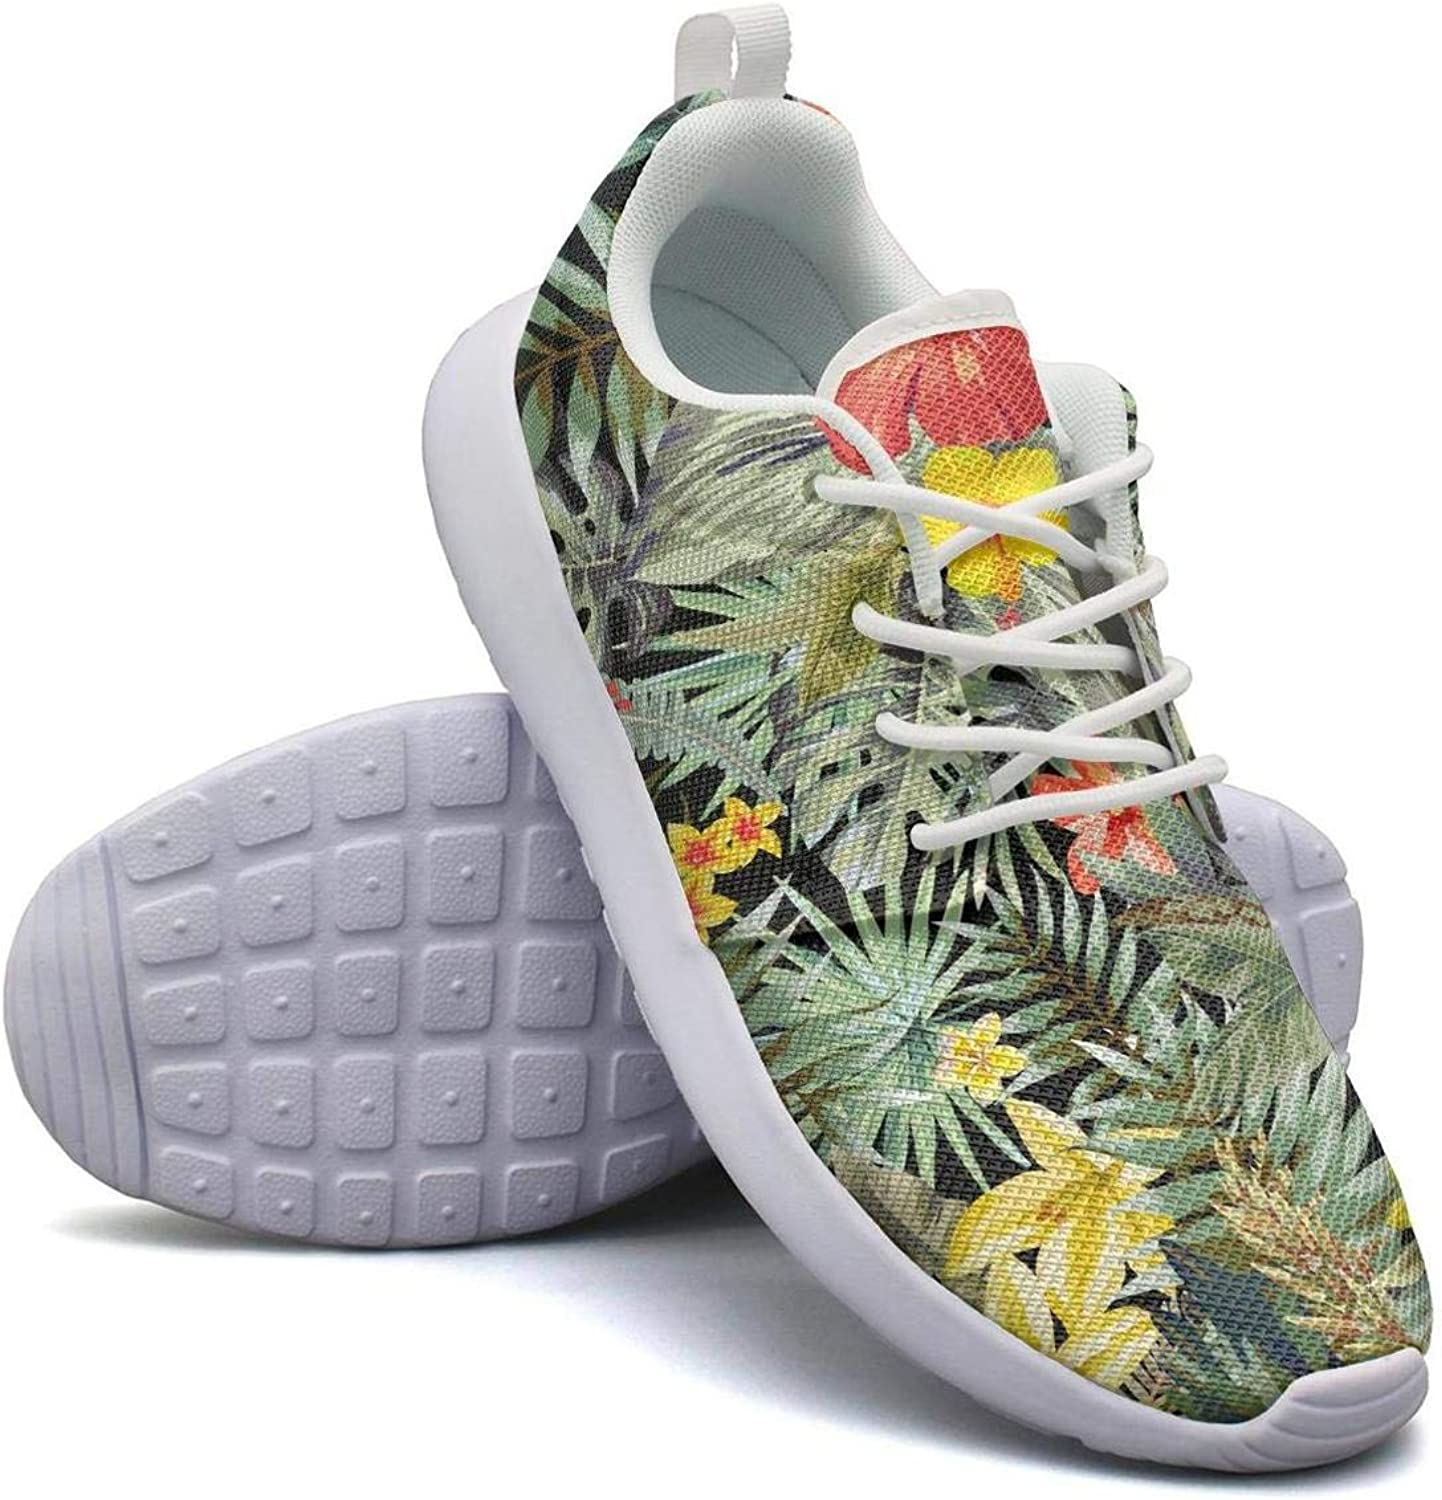 CHALi99 Comfort Ladies Lightweight Mesh shoes colorful Tropical Leaves Print Pabric Loafers Outdoor Rubber Sole